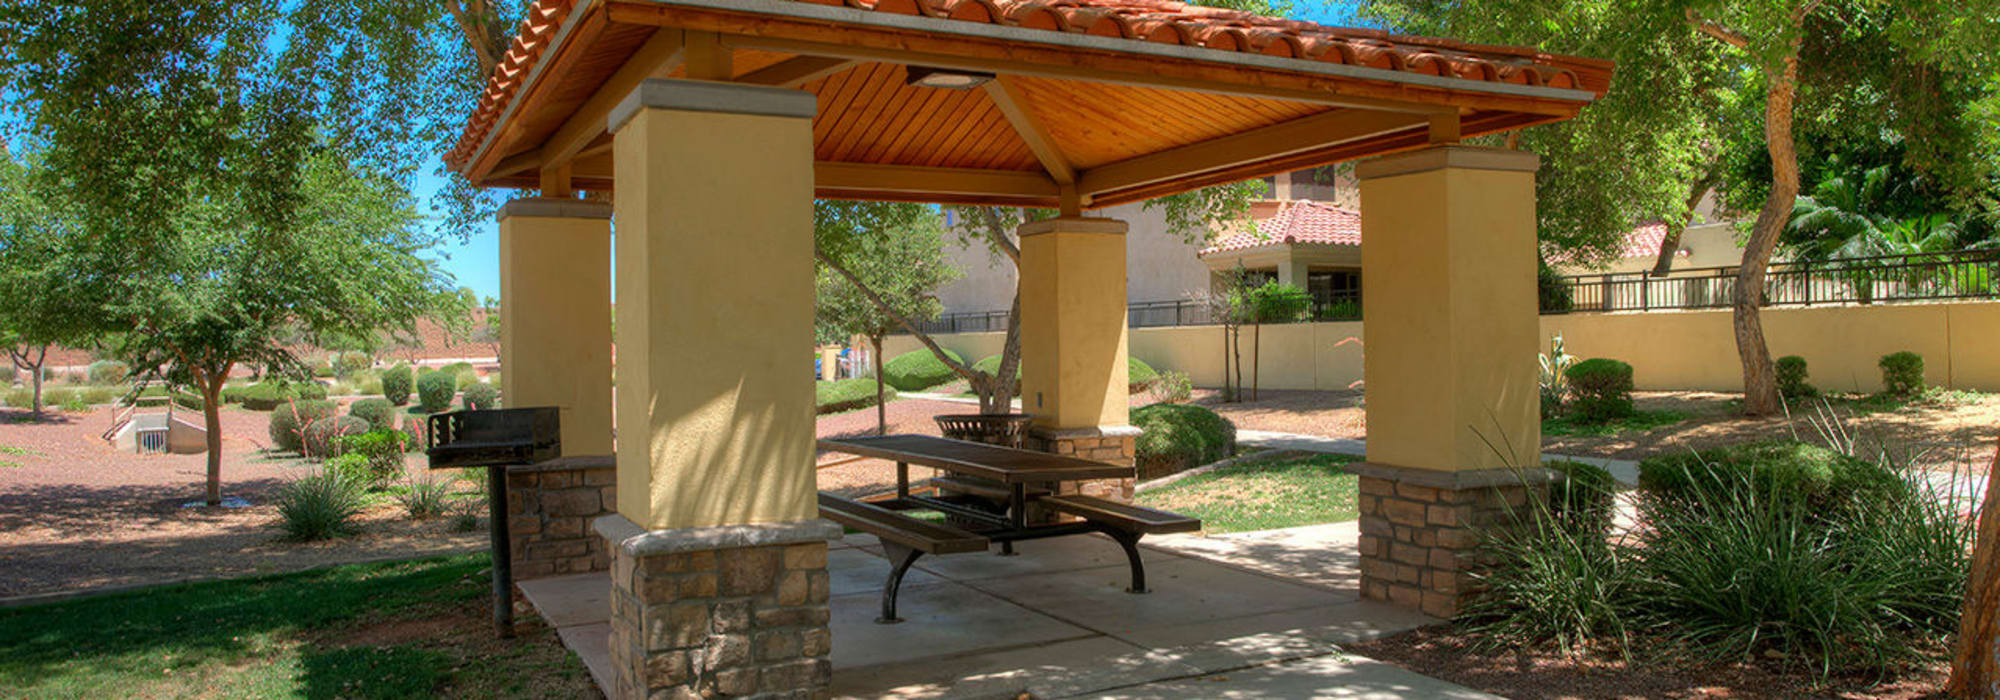 Covered table and outdoor grill at BB Living at Higley Park in Gilbert, Arizona